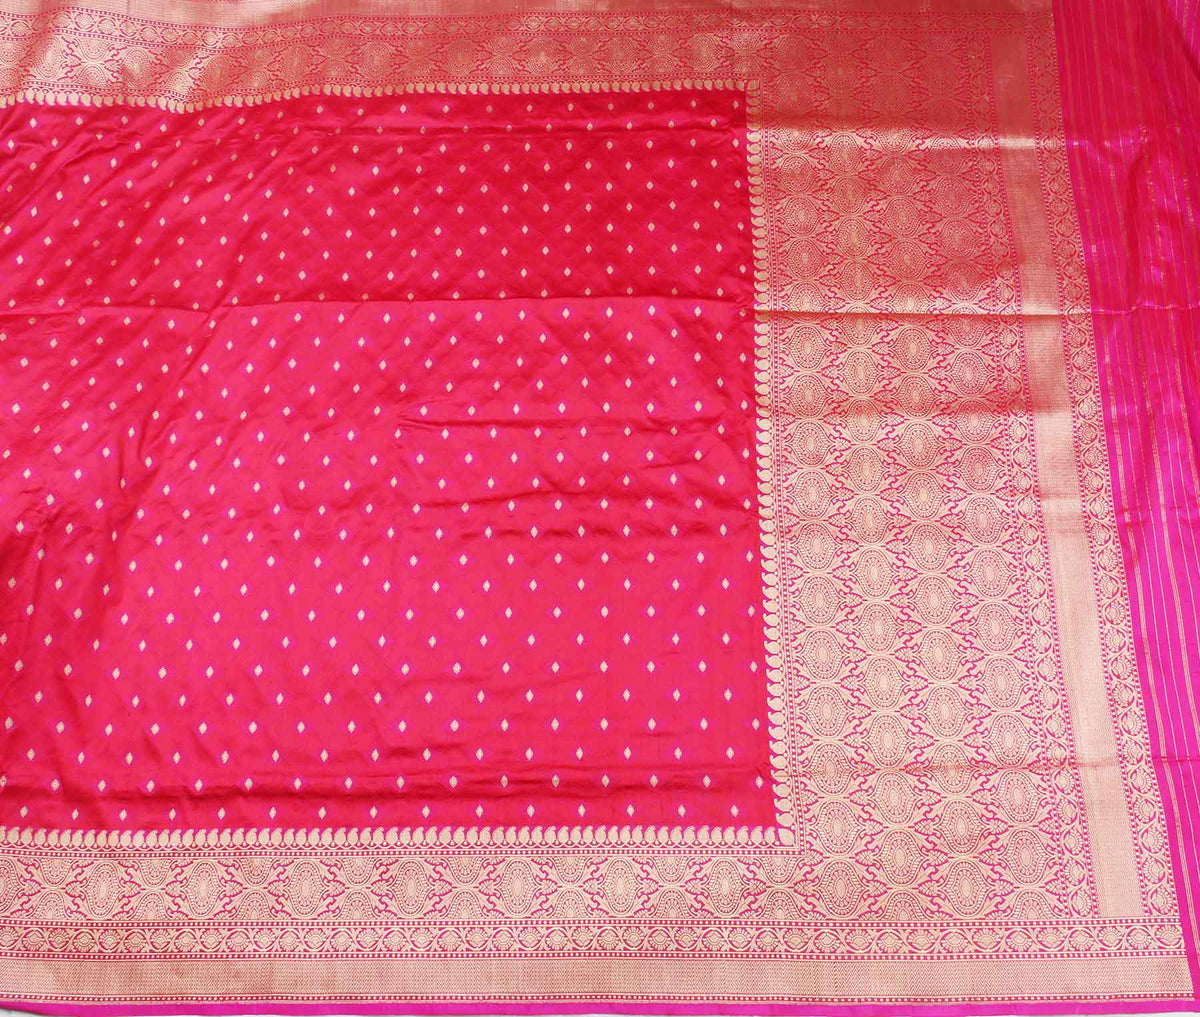 Red Katan Silk Handwoven Banarasi saree with meenedar tanchoi weave (2) flat